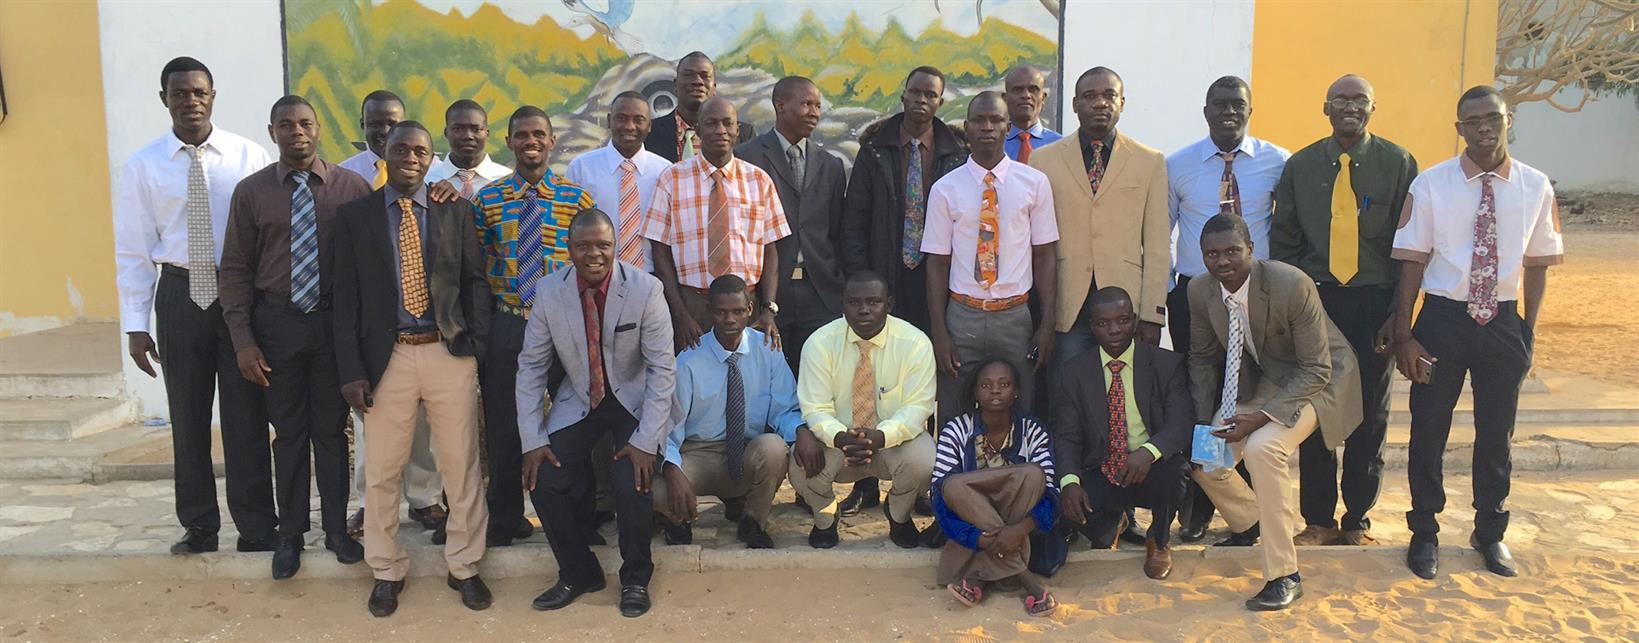 bible-school-students-amp-ties-(1)